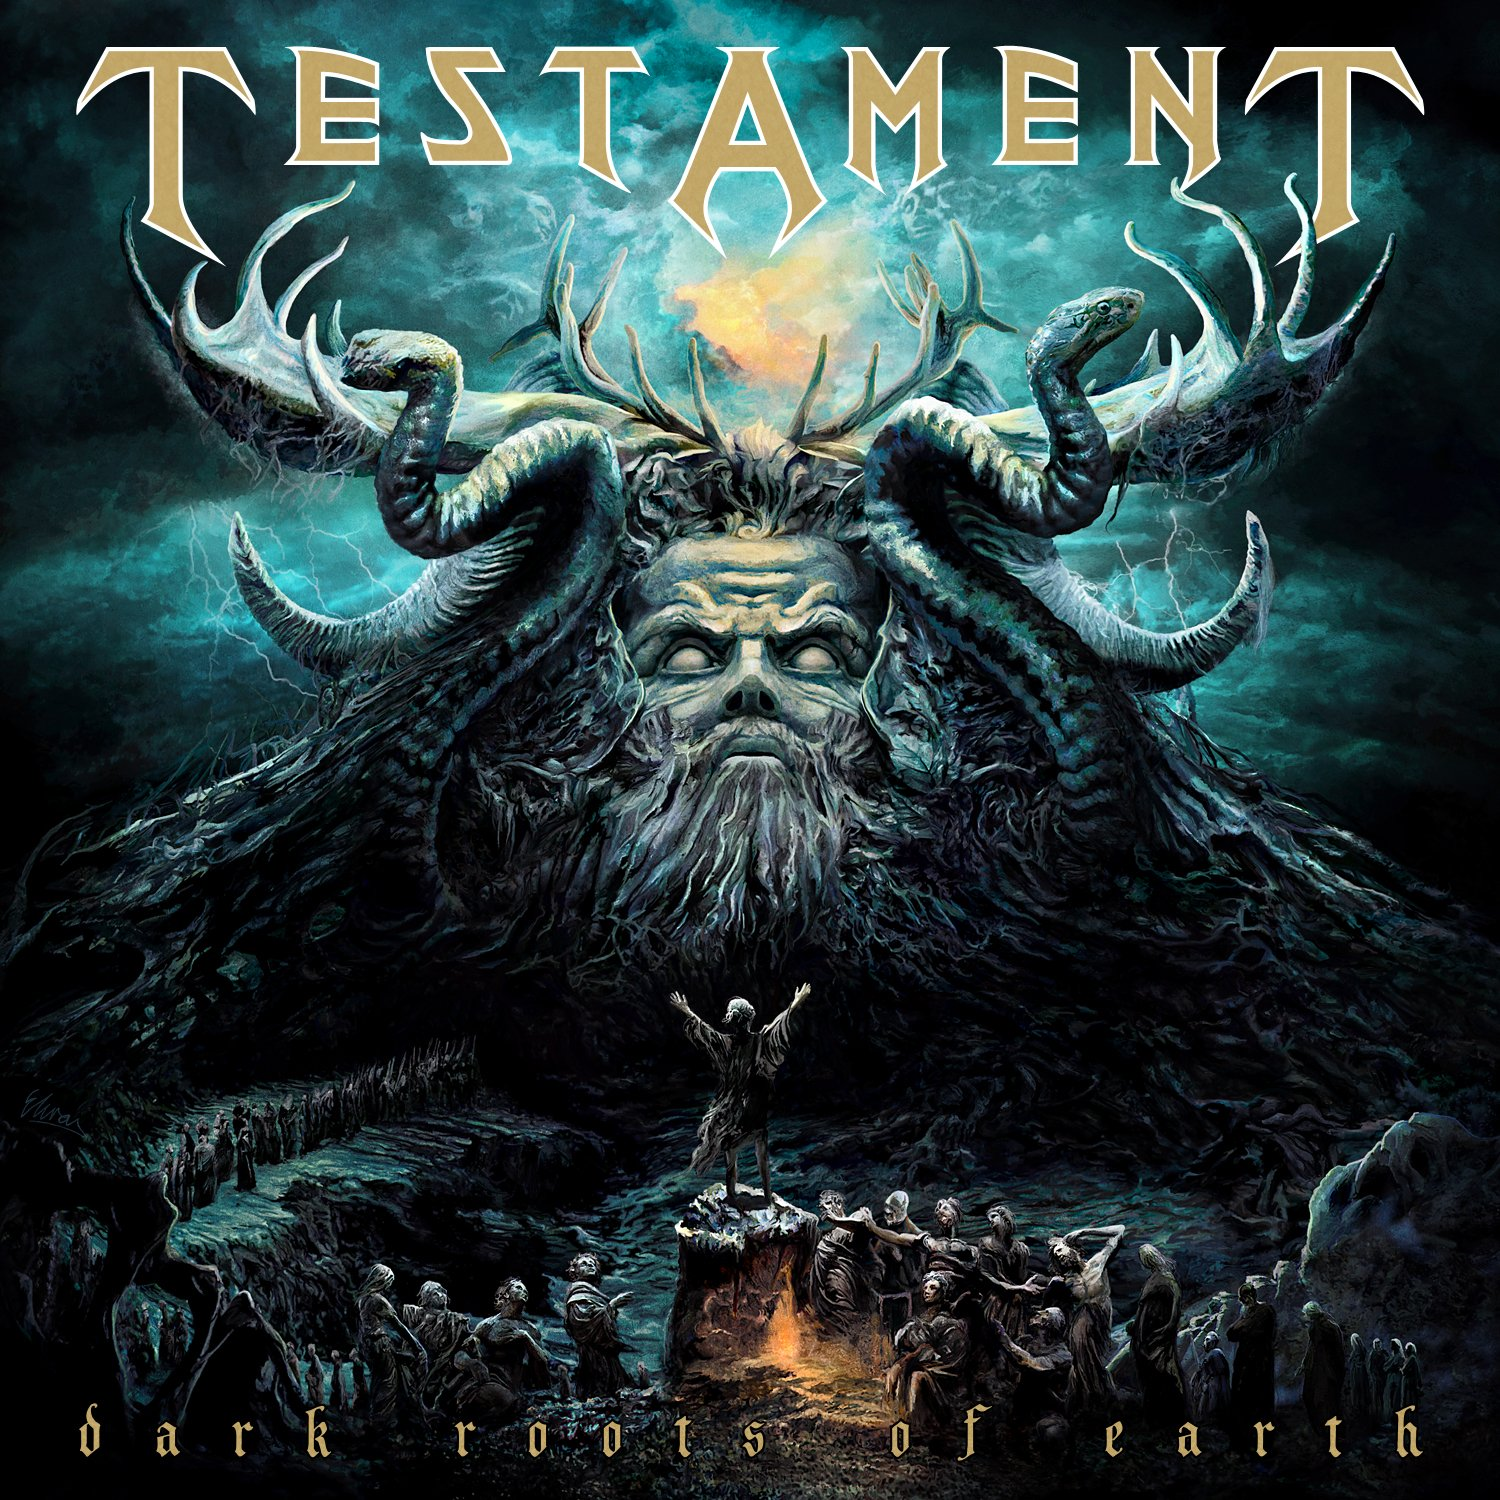 CD : Testament - Dark Roots of Earth (Deluxe Edition, Jewel Case Packaging)